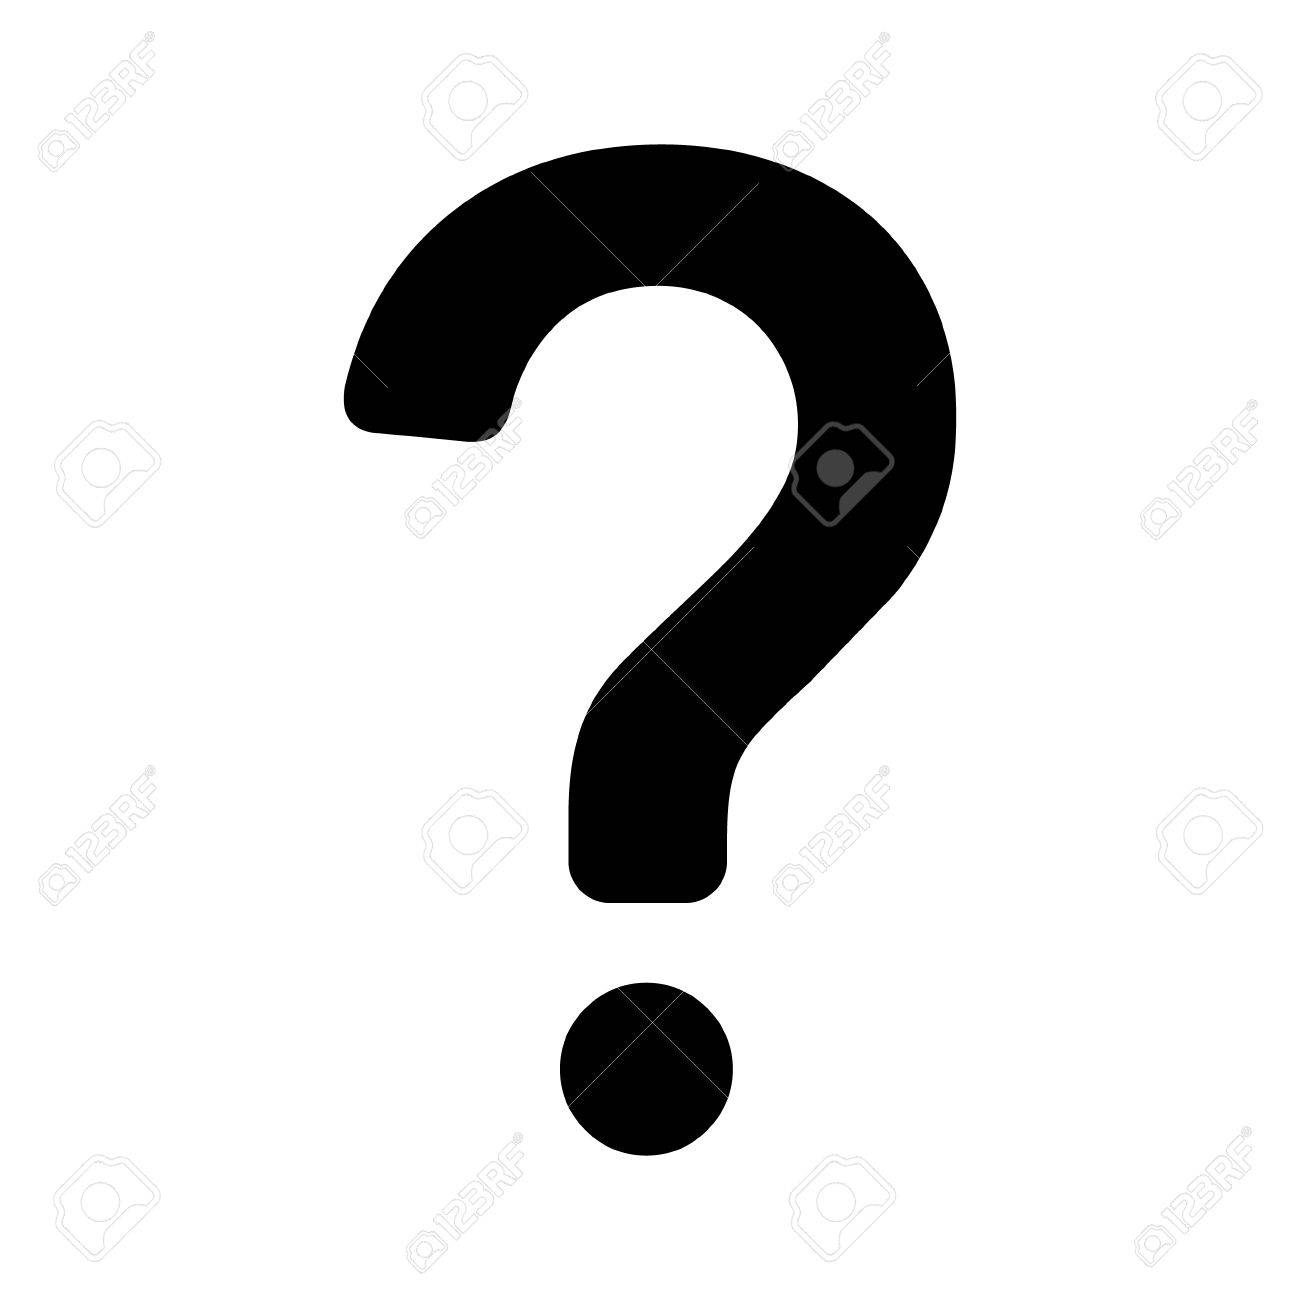 Question mark flat icon for apps and websites - 56300738